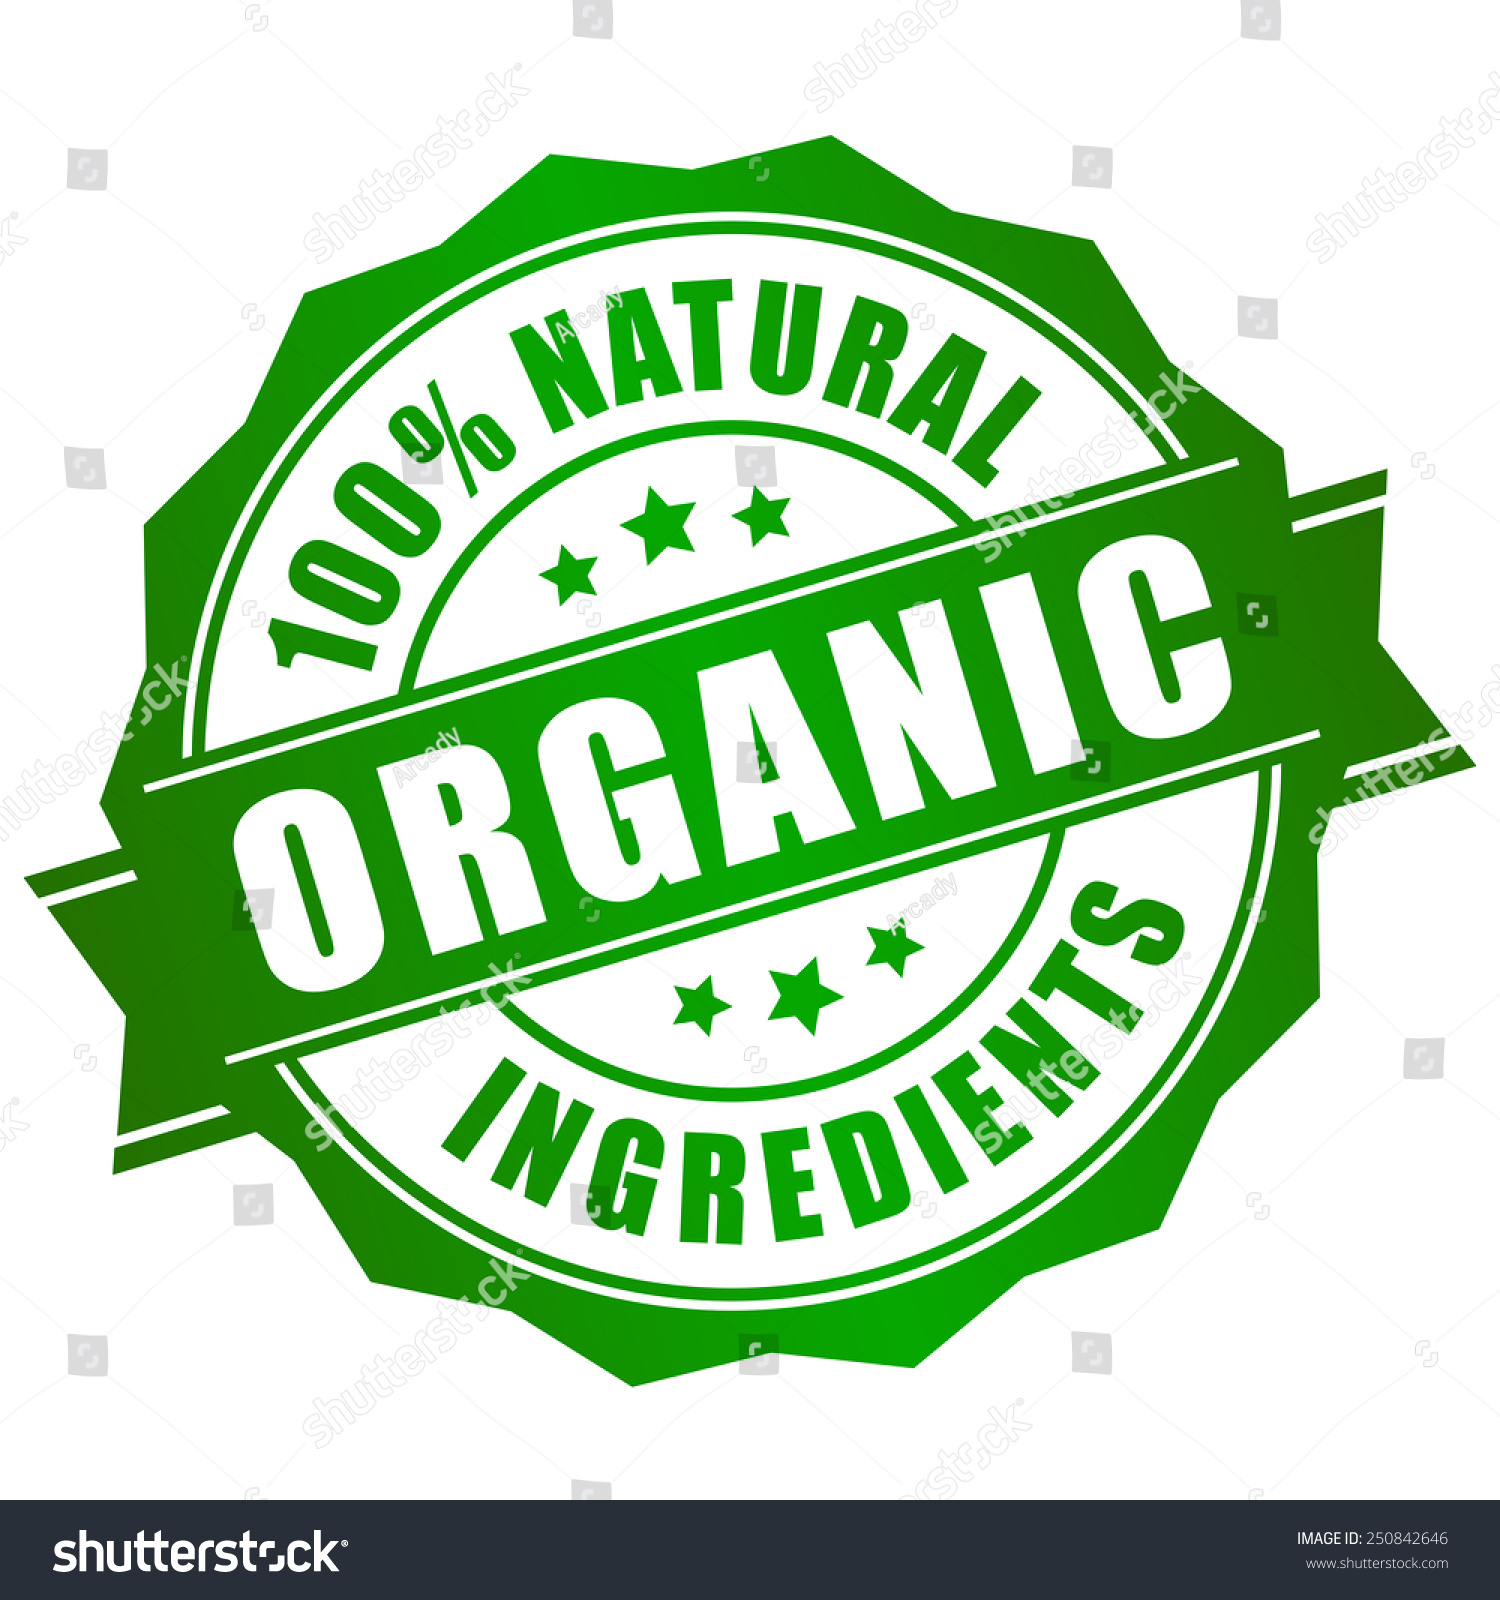 What Is Natural Fertilizer Made Of